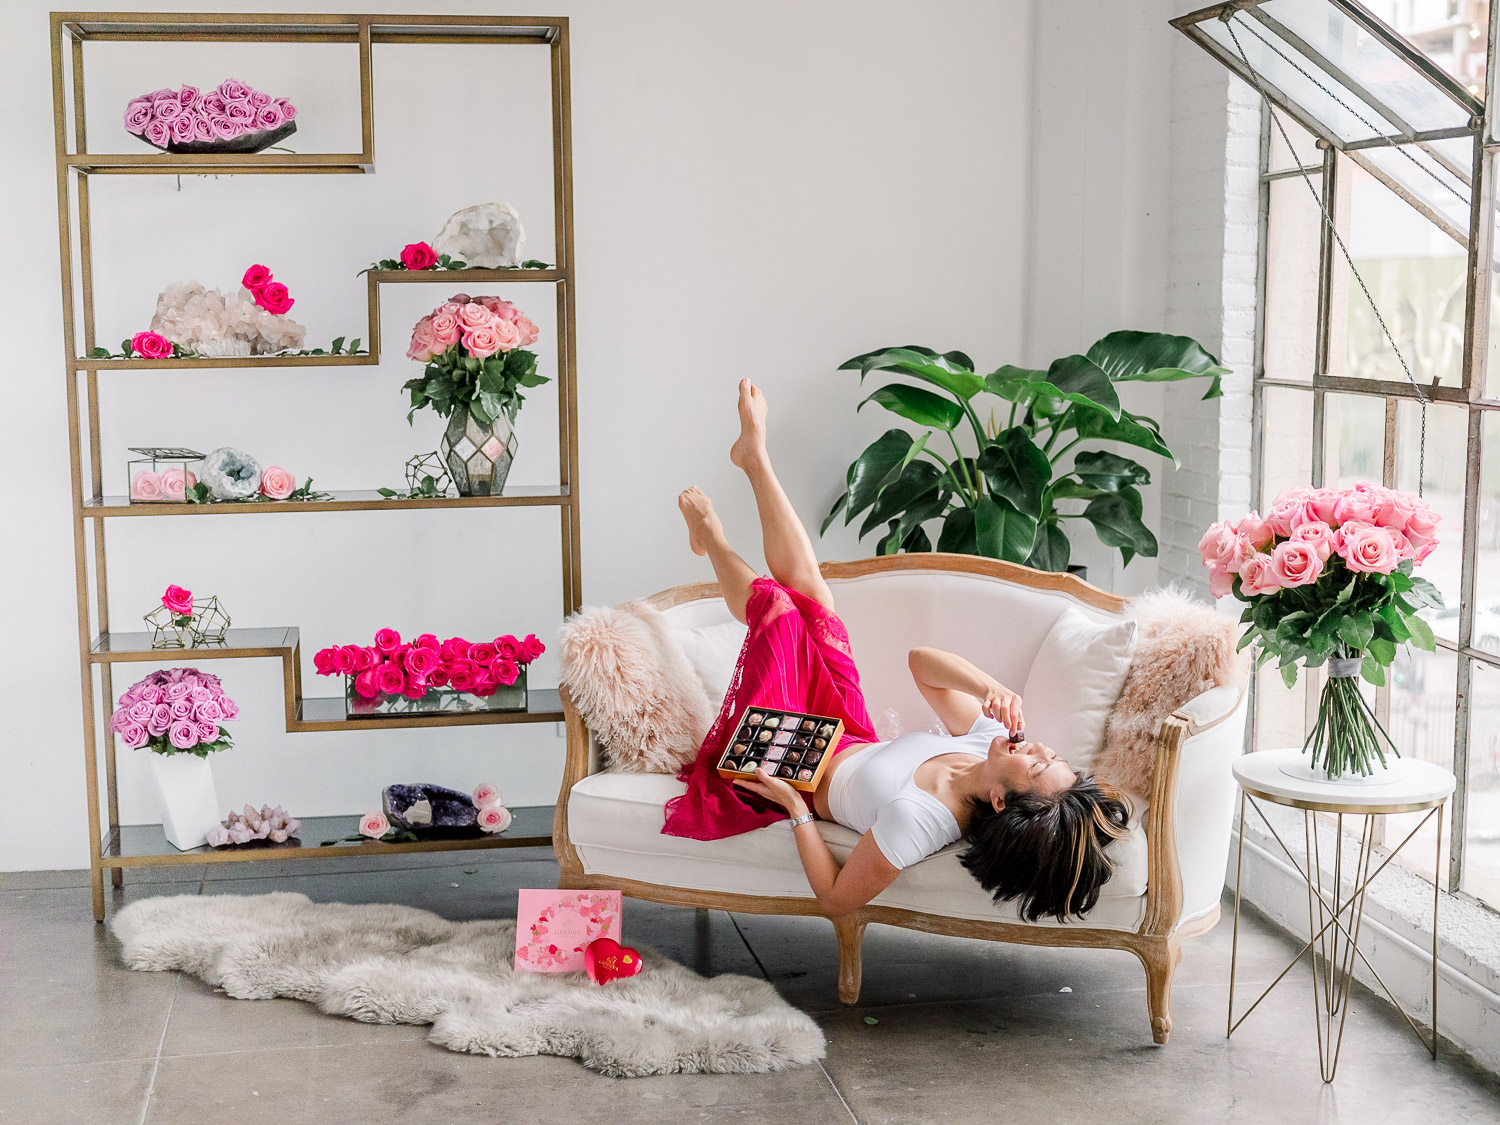 Caroline Tran laying on a couch, eating Godiva chocolates, surrounded by all shades of pink roses from enchanted express.